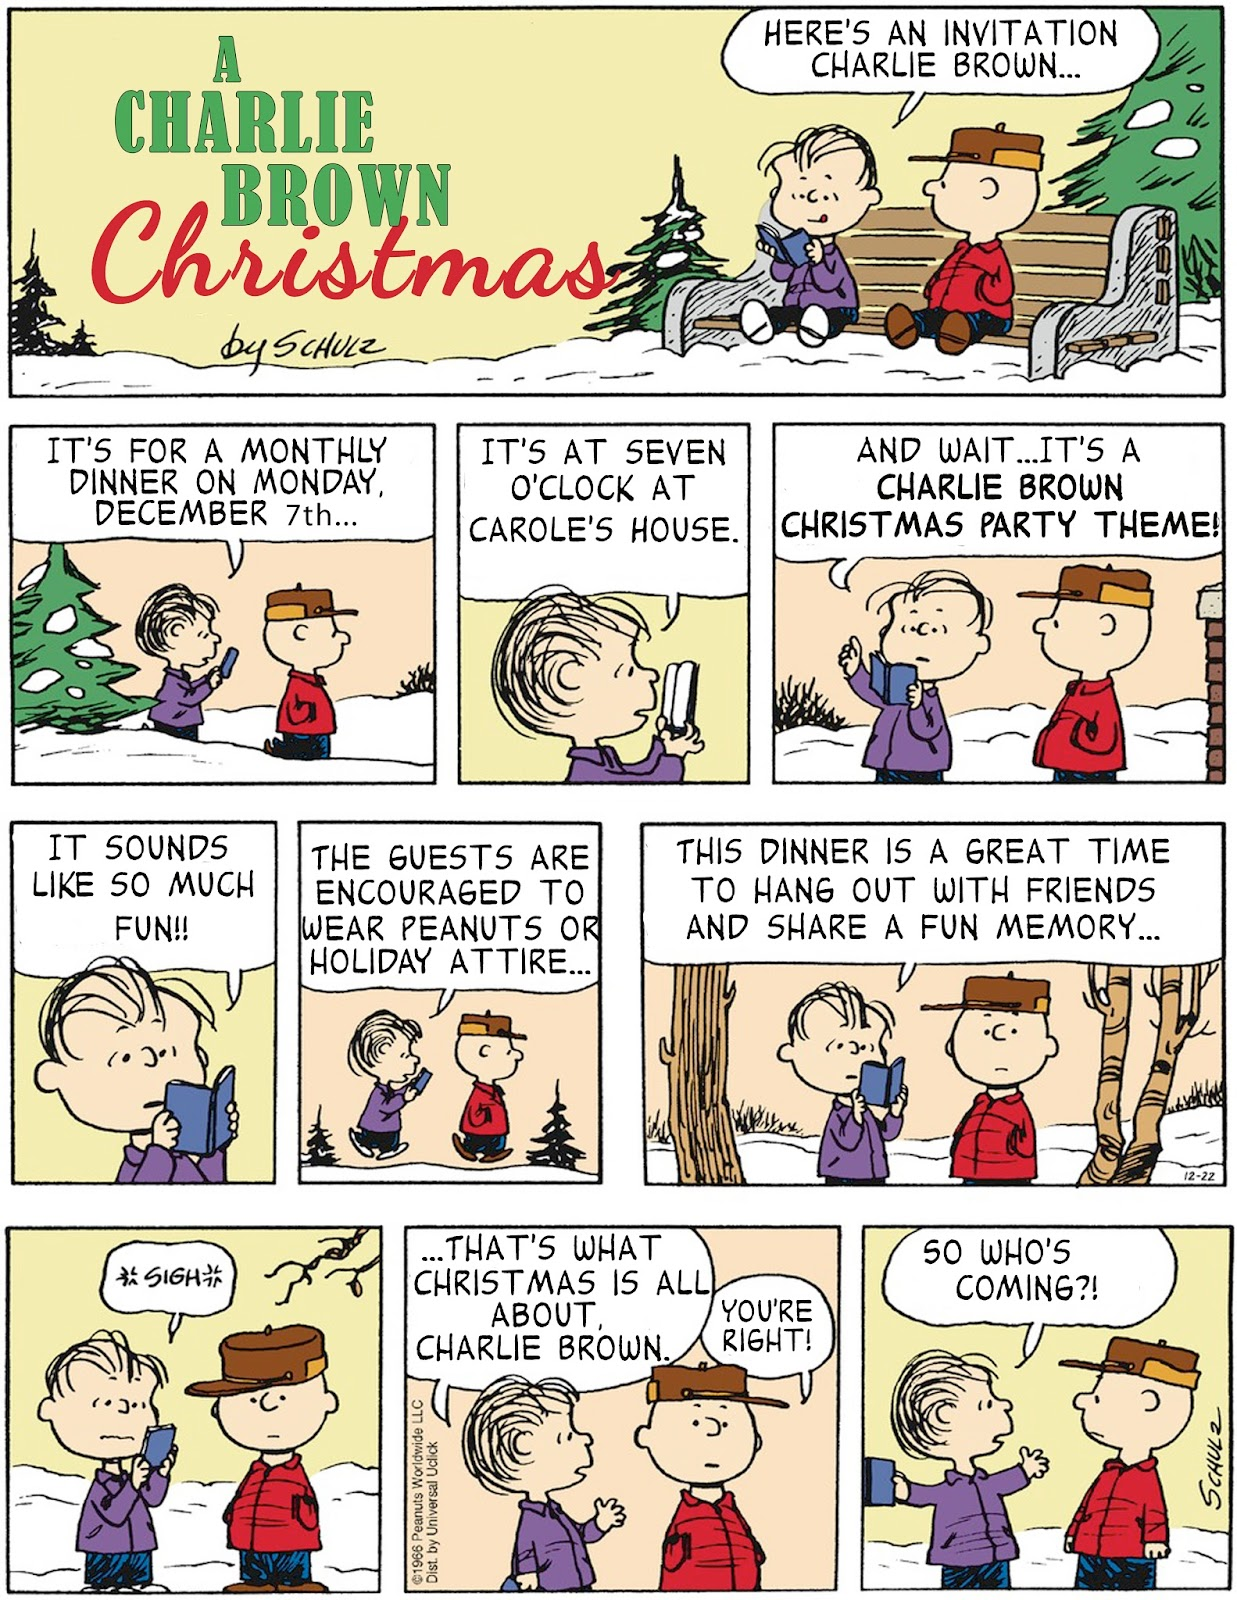 Invite and Delight: Charlie Brown Christmas Party